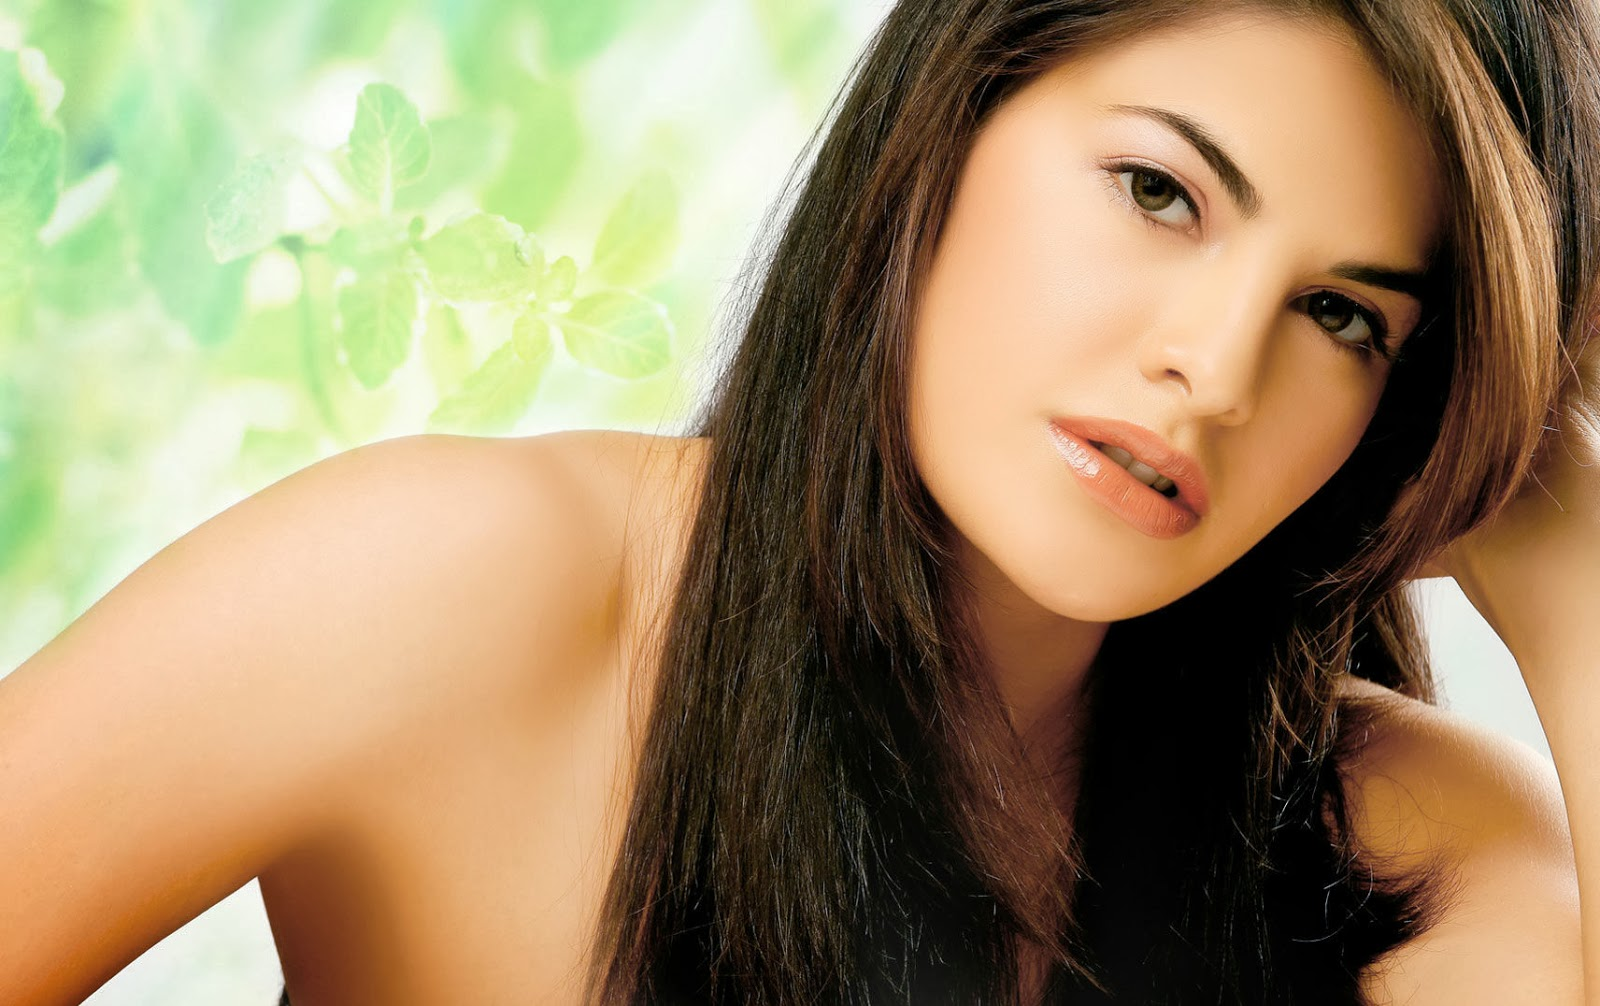 Jacqueline Fernandez Heroine Wallpapers  Bollywood Wallpapers  Free, Hot, Sexy -5339